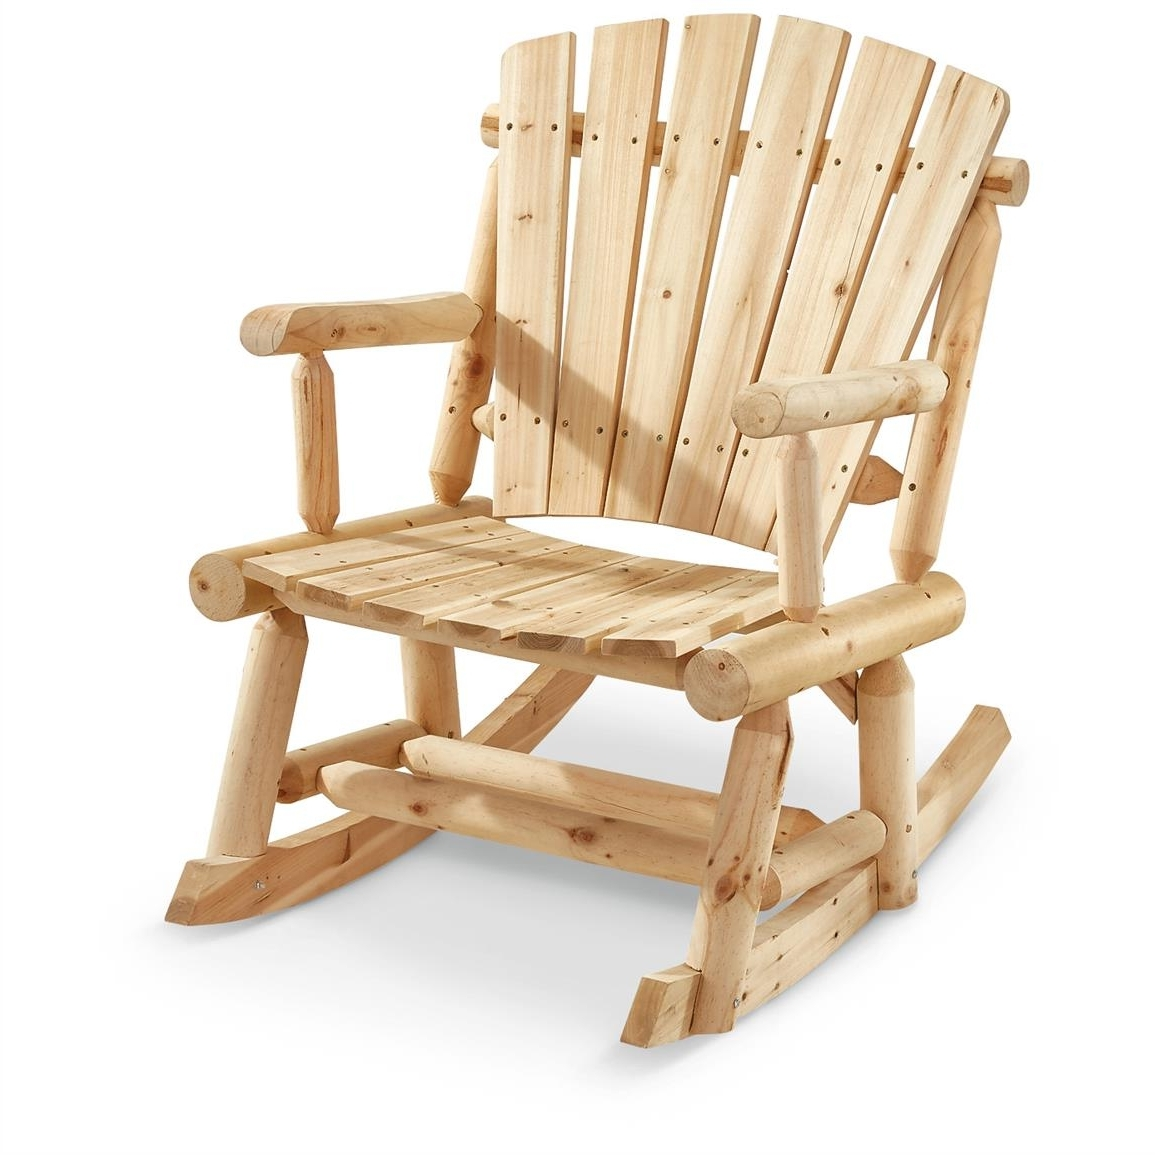 Most Recently Released Oversized Patio Rocking Chairs Intended For Castlecreek Oversized Adirondack Rocker – 657797, Patio Furniture At (View 9 of 20)